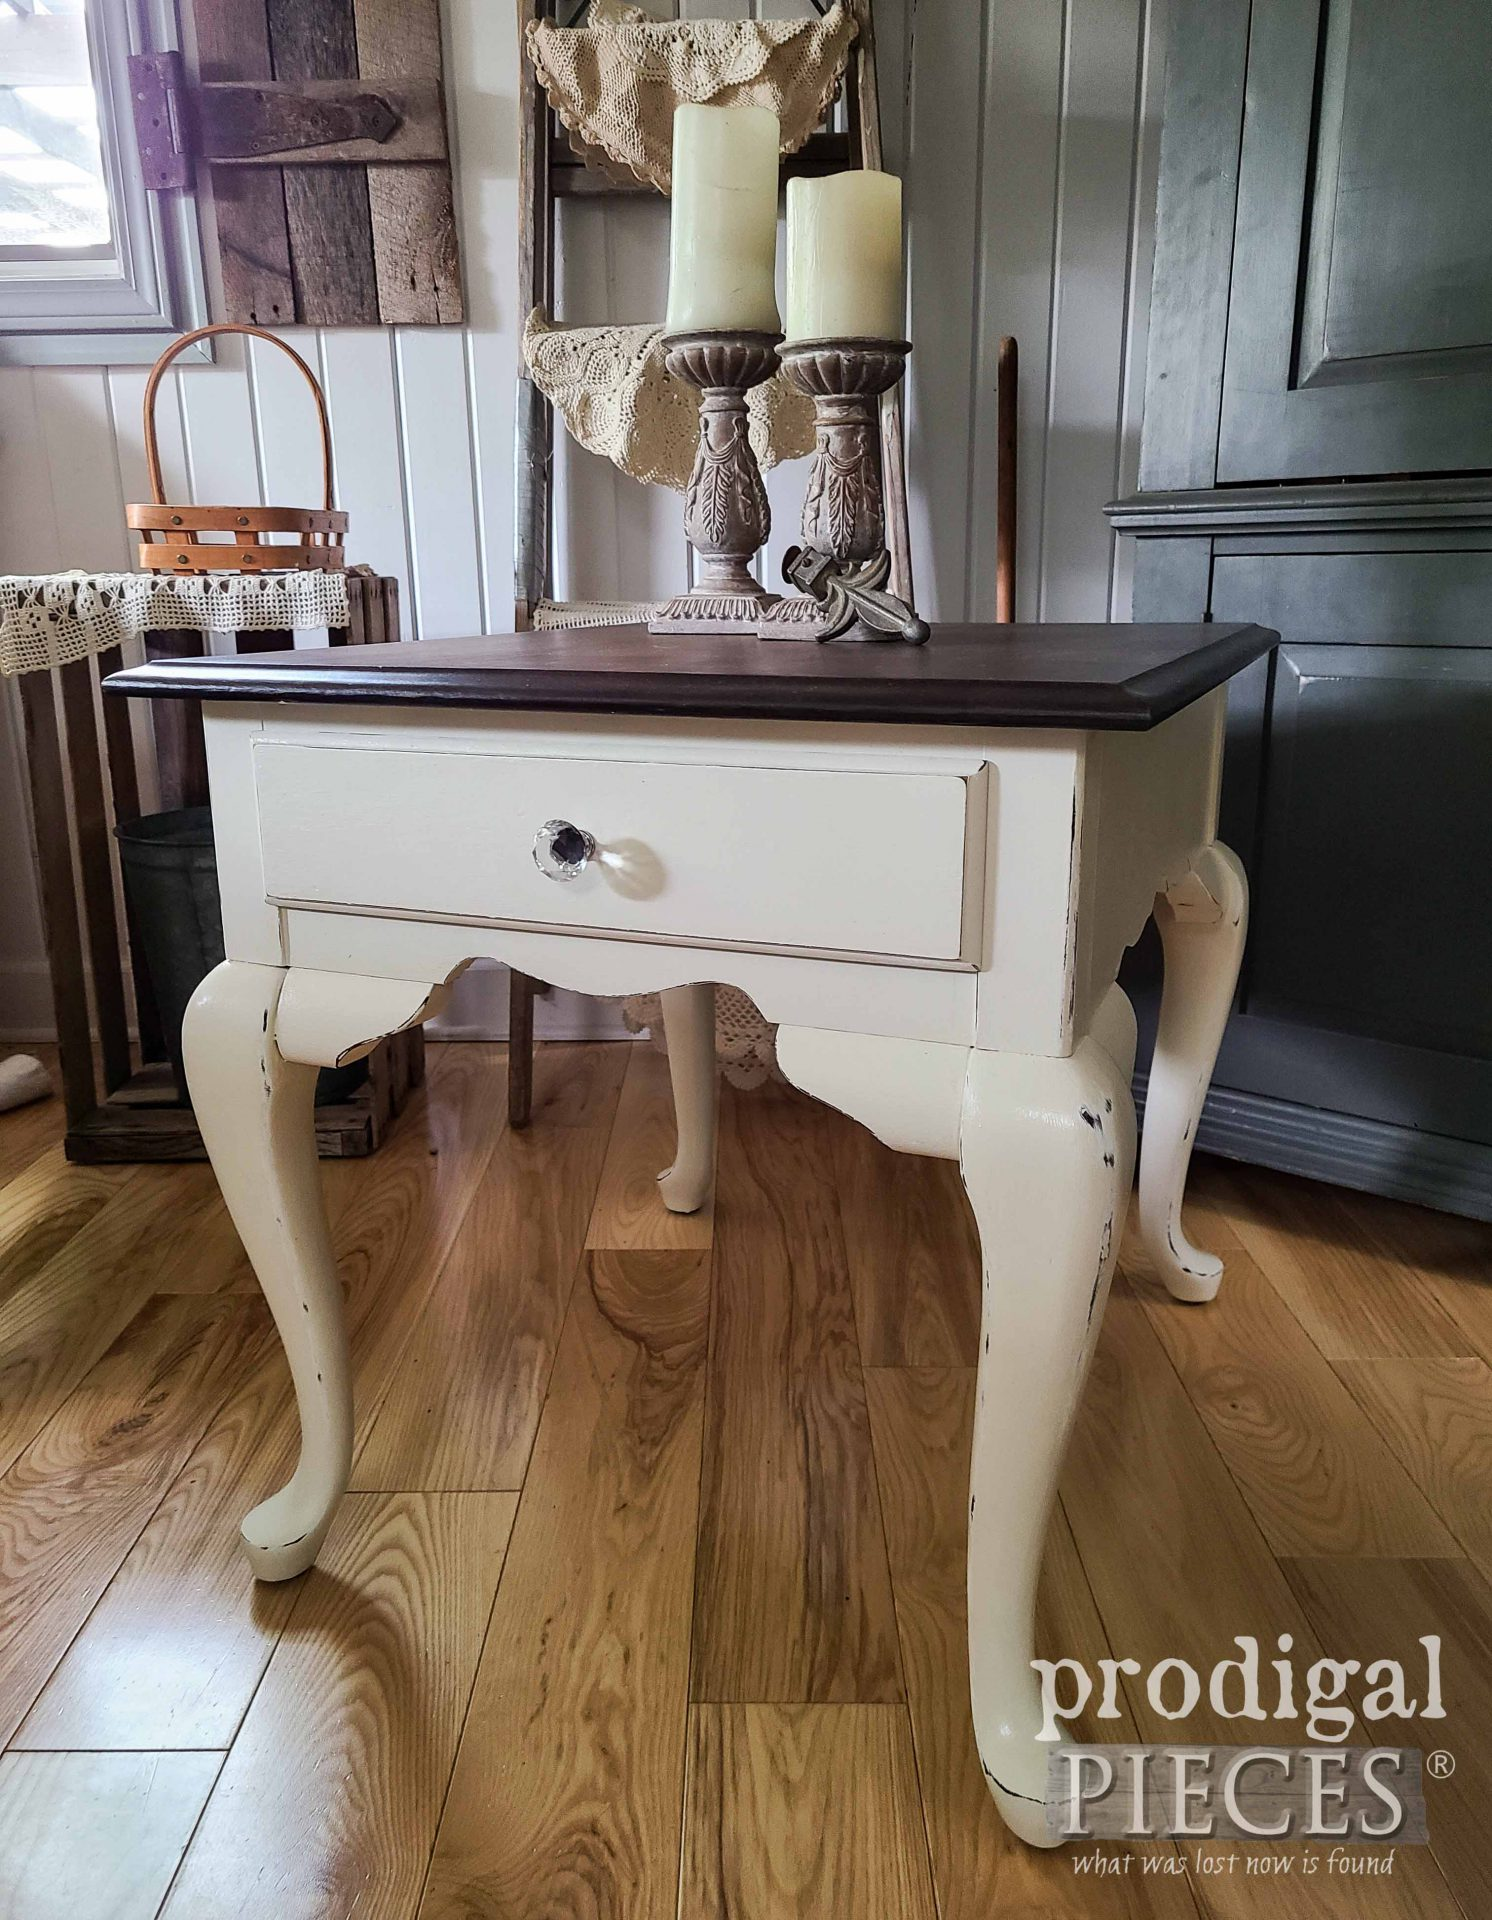 Rustic Chic Farmhouse Side Table in Queen Anne Style for Vintage Decor by Prodigal Pieces | prodigalpieces.com #prodigalpieces #furniture #vintage #farmhouse #home